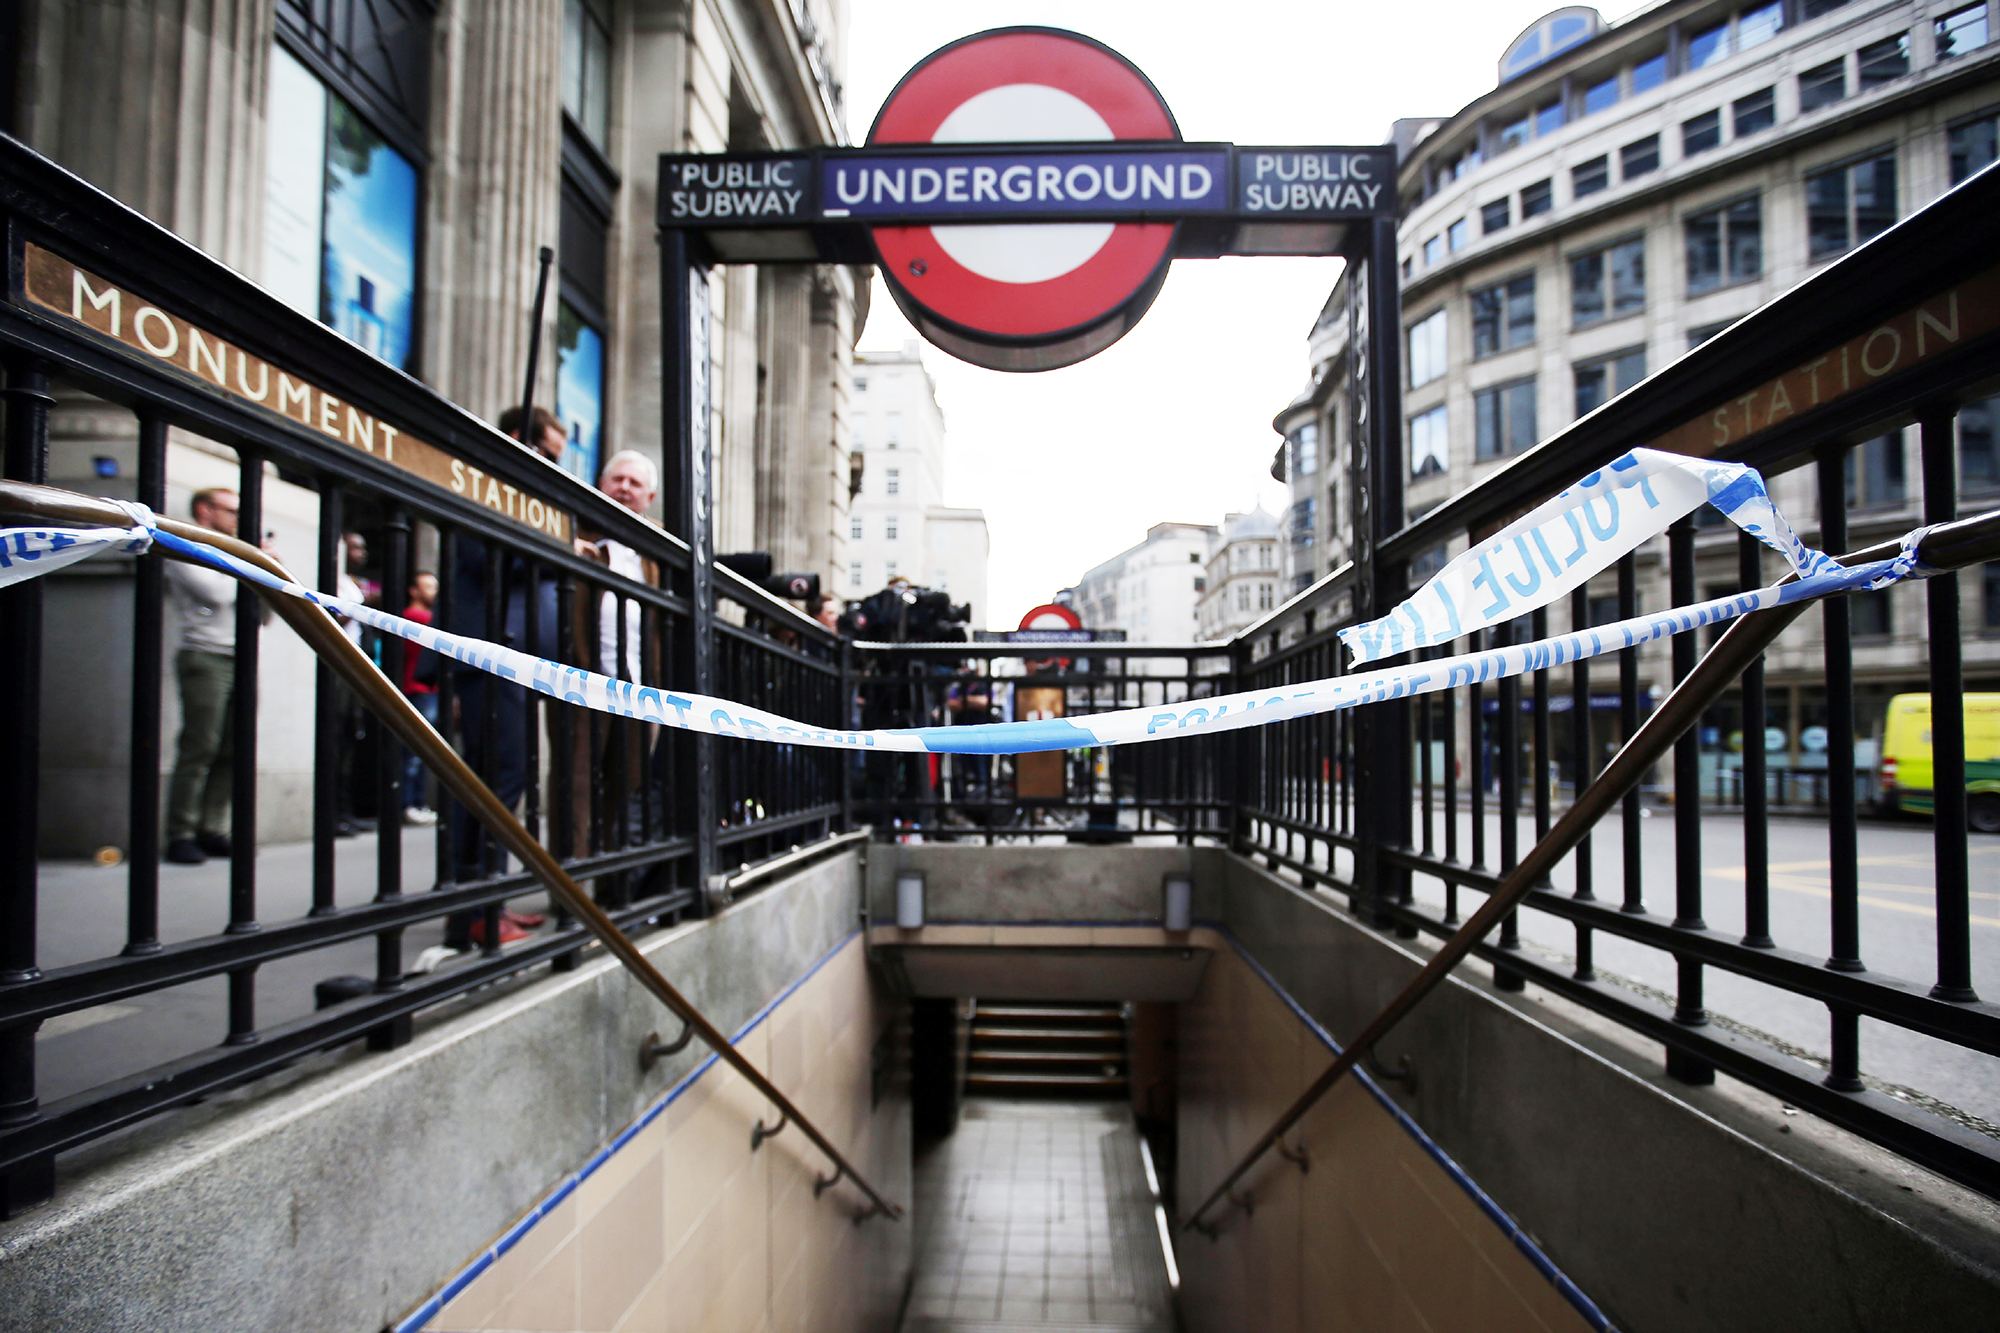 Monument Underground station, near London Bridge is closed in London on June 4, 2017, as police continue their investigations following the June 3 terror attack.